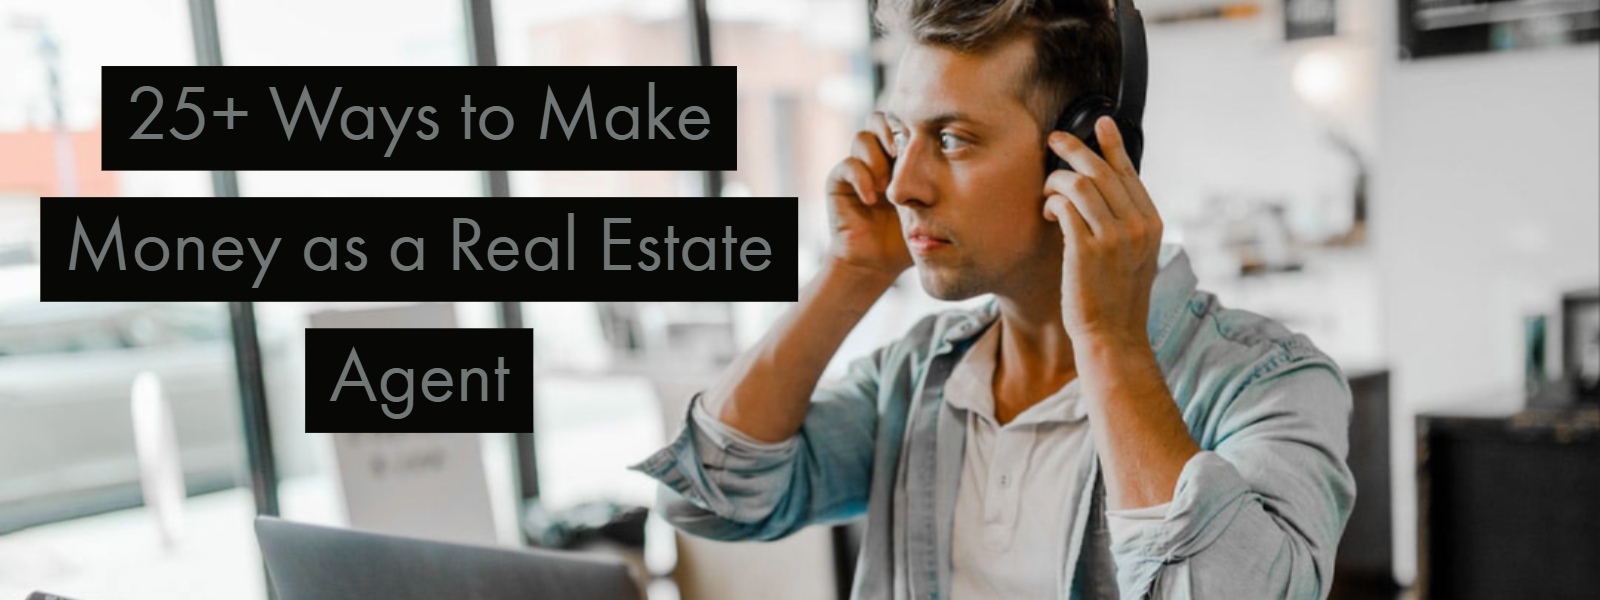 """25+ Ways to Make Money as a Real Estate Agent"" No."